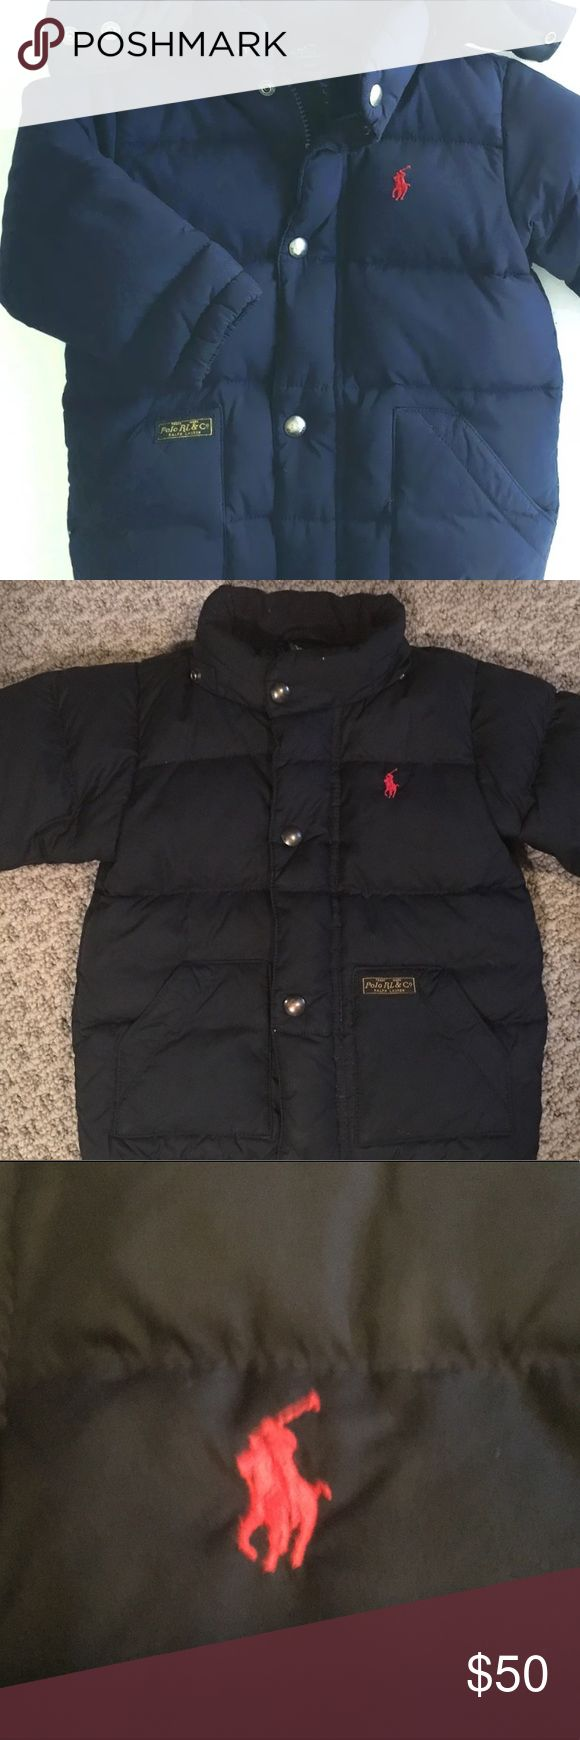 Ralph Lauren Polo Winter Jacket 18 months Navy blue elmwood puffer winter jacket excellent preowned condition no stains tears hood not included Polo by Ralph Lauren Jackets & Coats Puffers